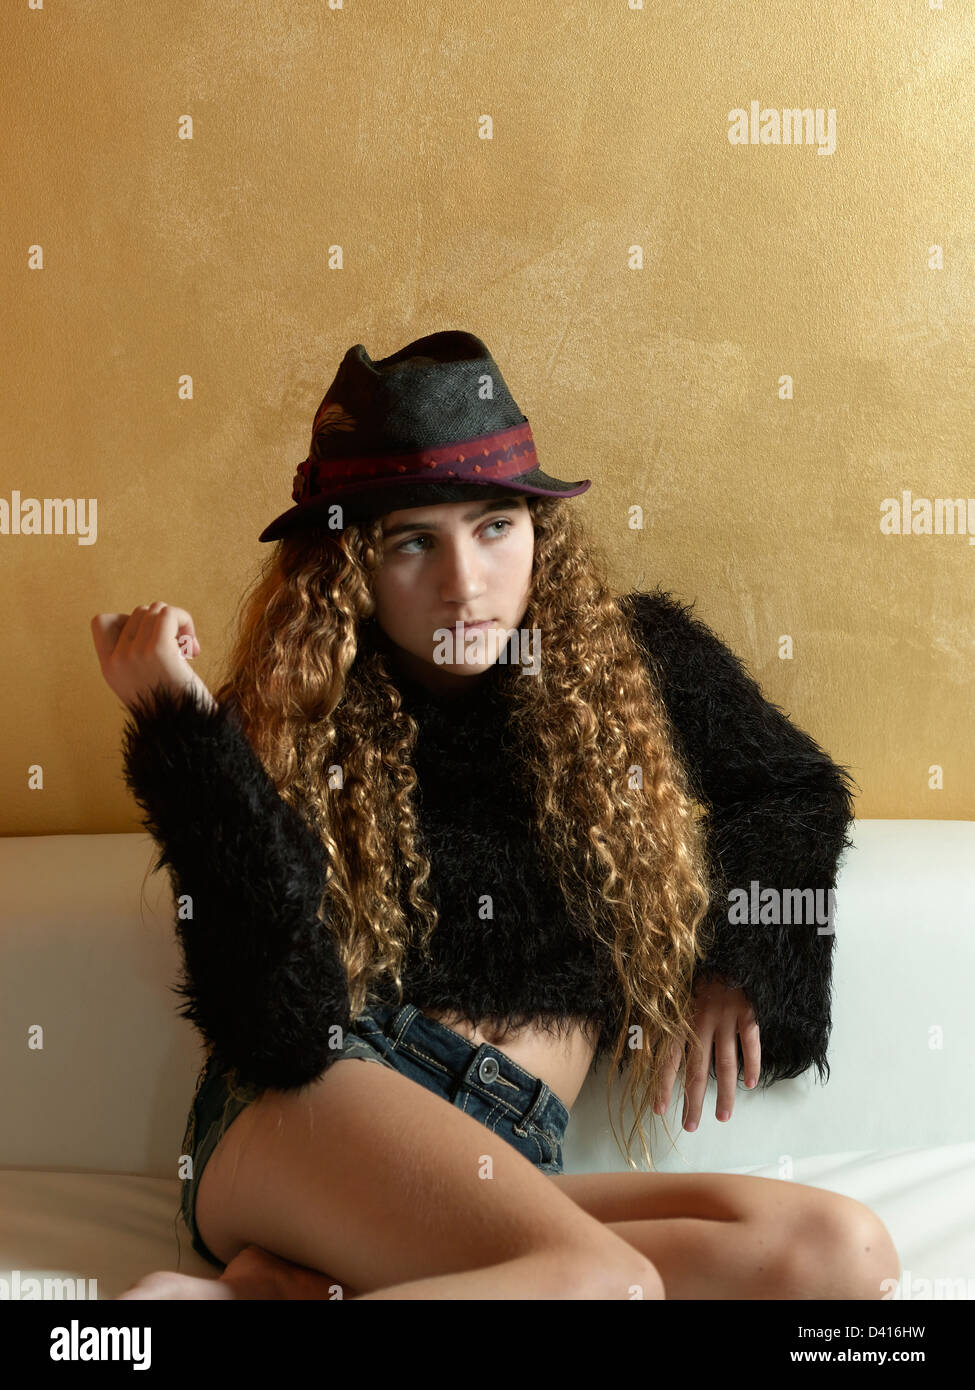 Portrait of a Young Girl with Long Curly Hair - Stock Image